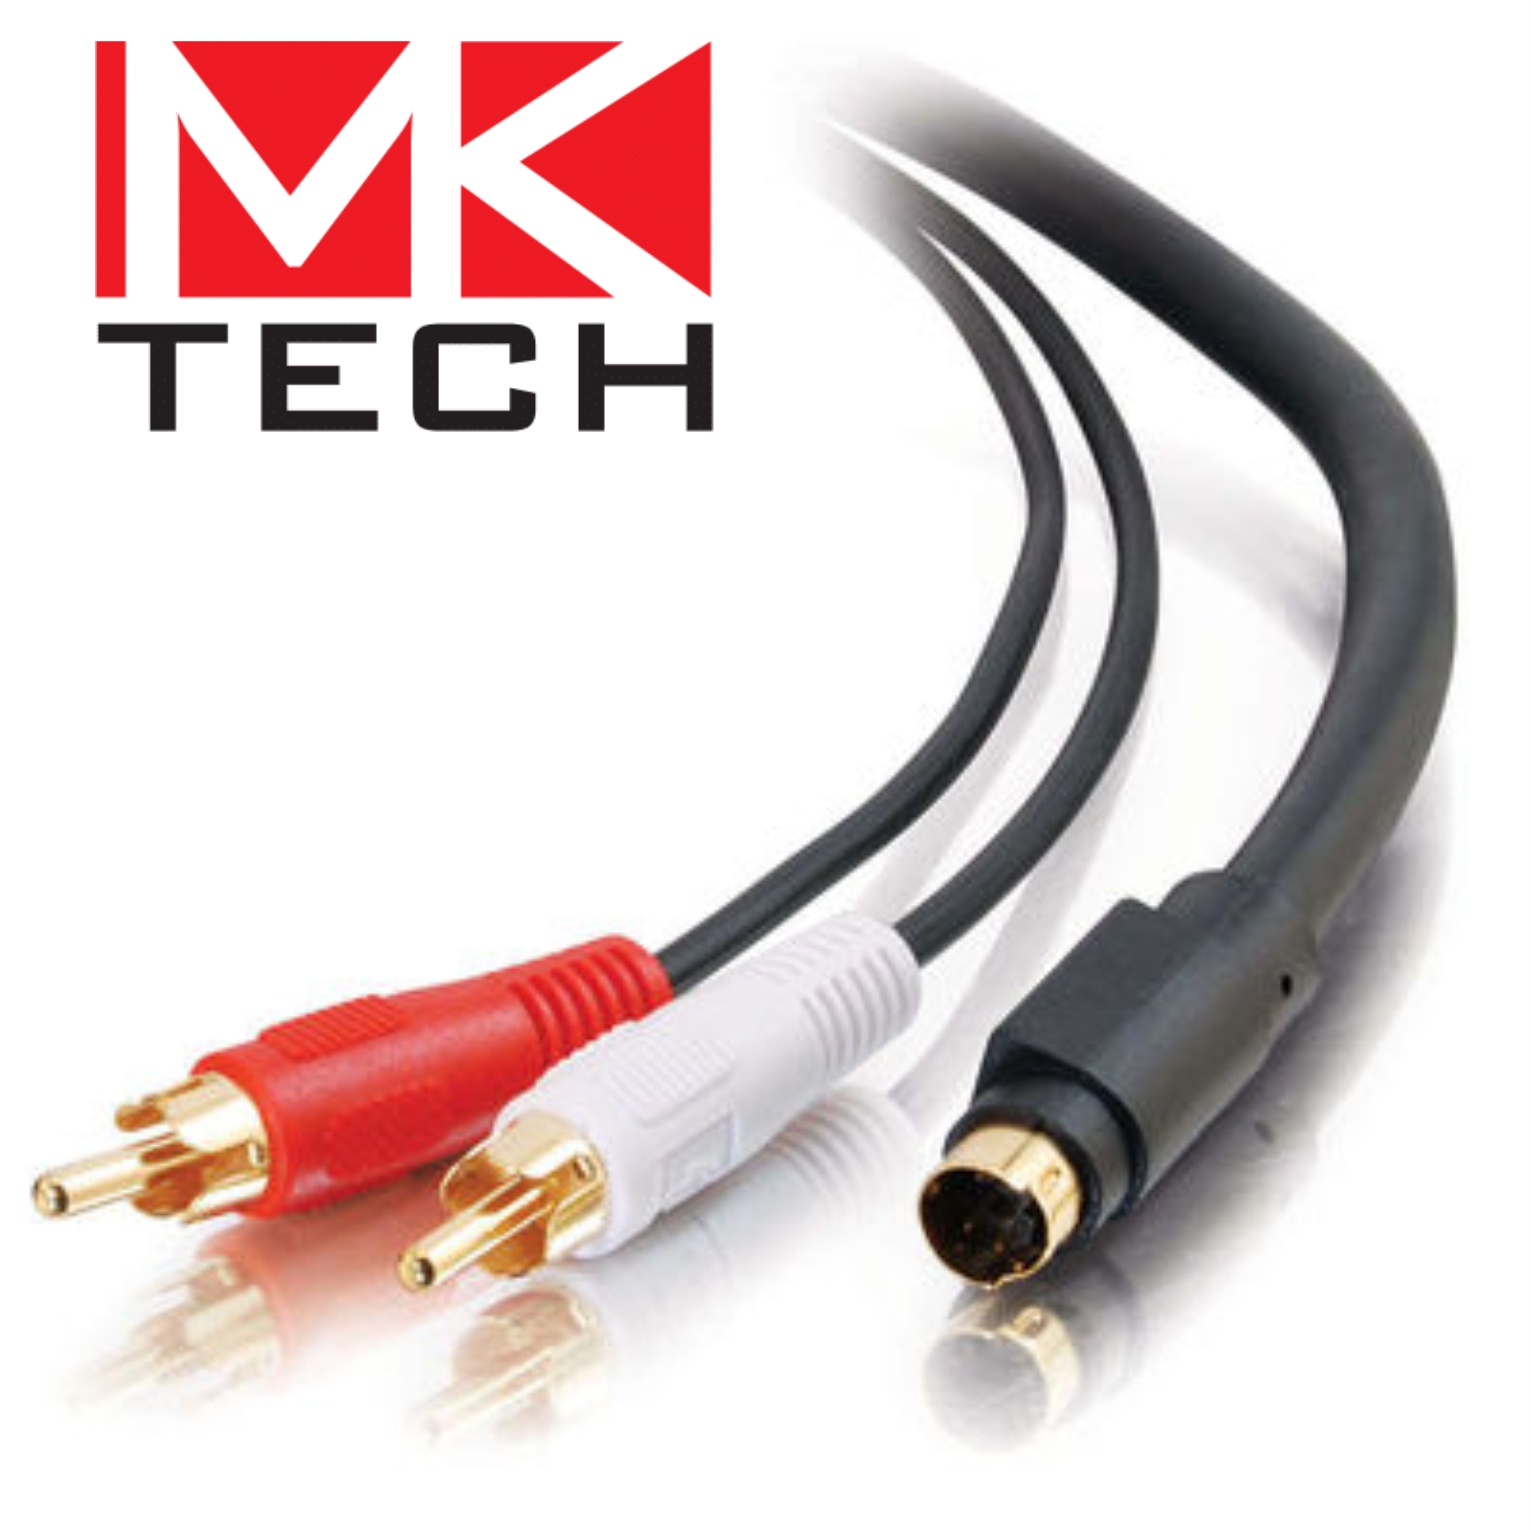 S-Video-M to Dual RCA-M Кабел (Y). 3m MKTECH